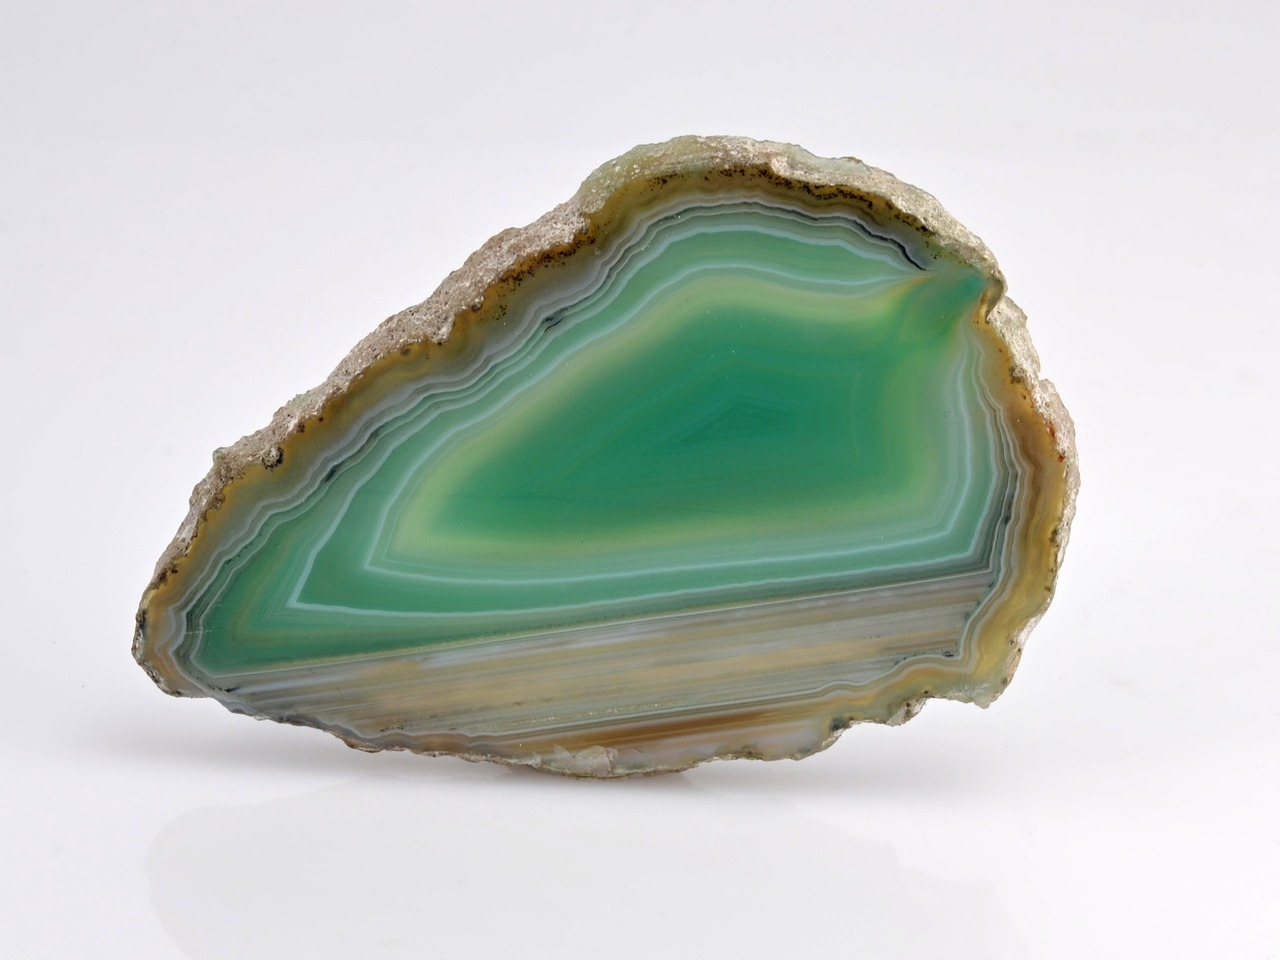 precious stone agate green free photo